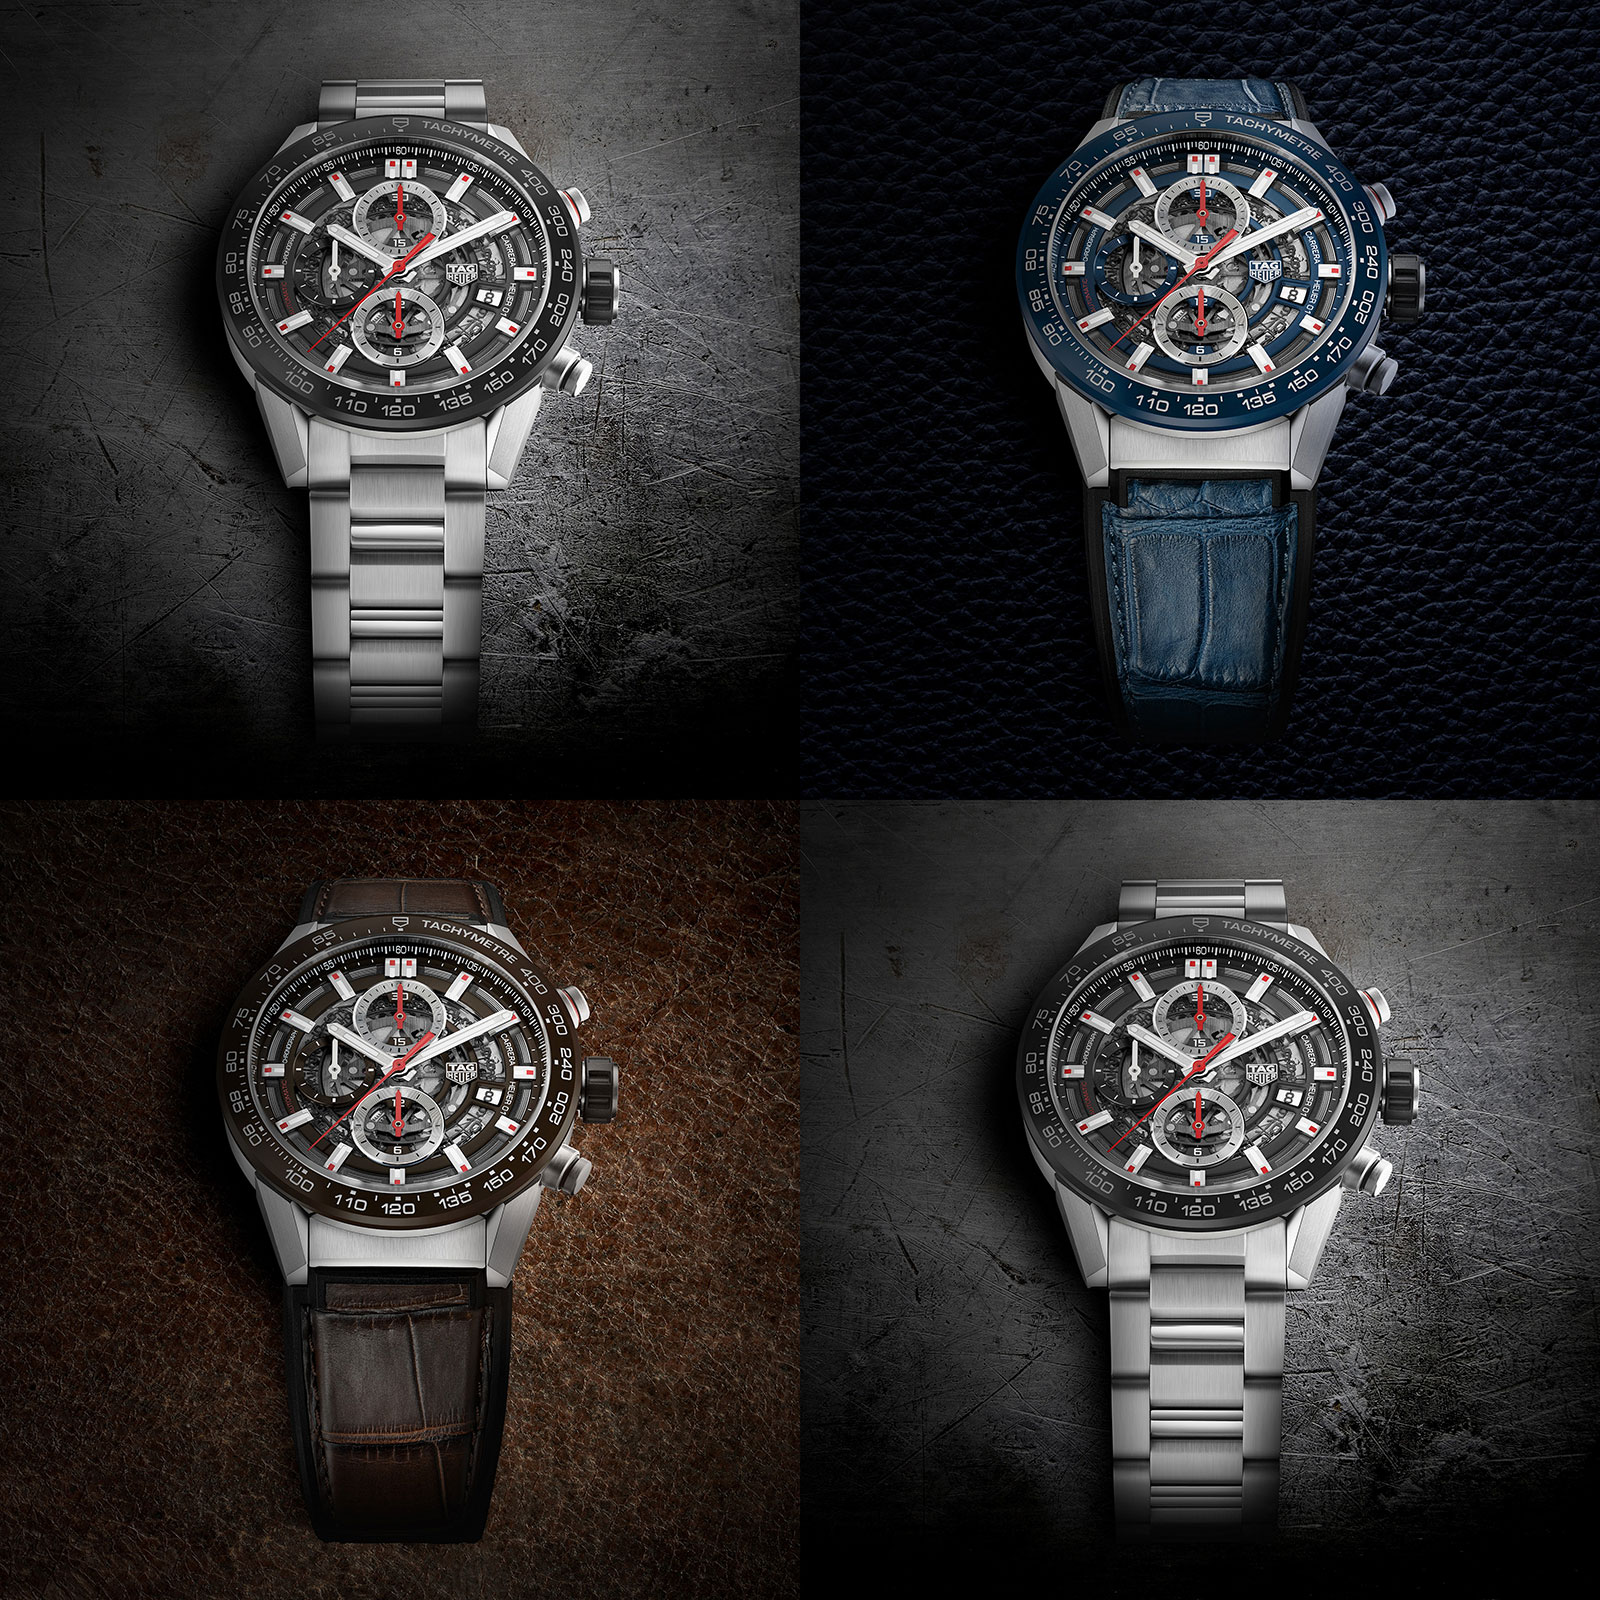 476e19558886 TAG Heuer Shrinks its Bestselling Chronograph with the Carrera Heuer ...